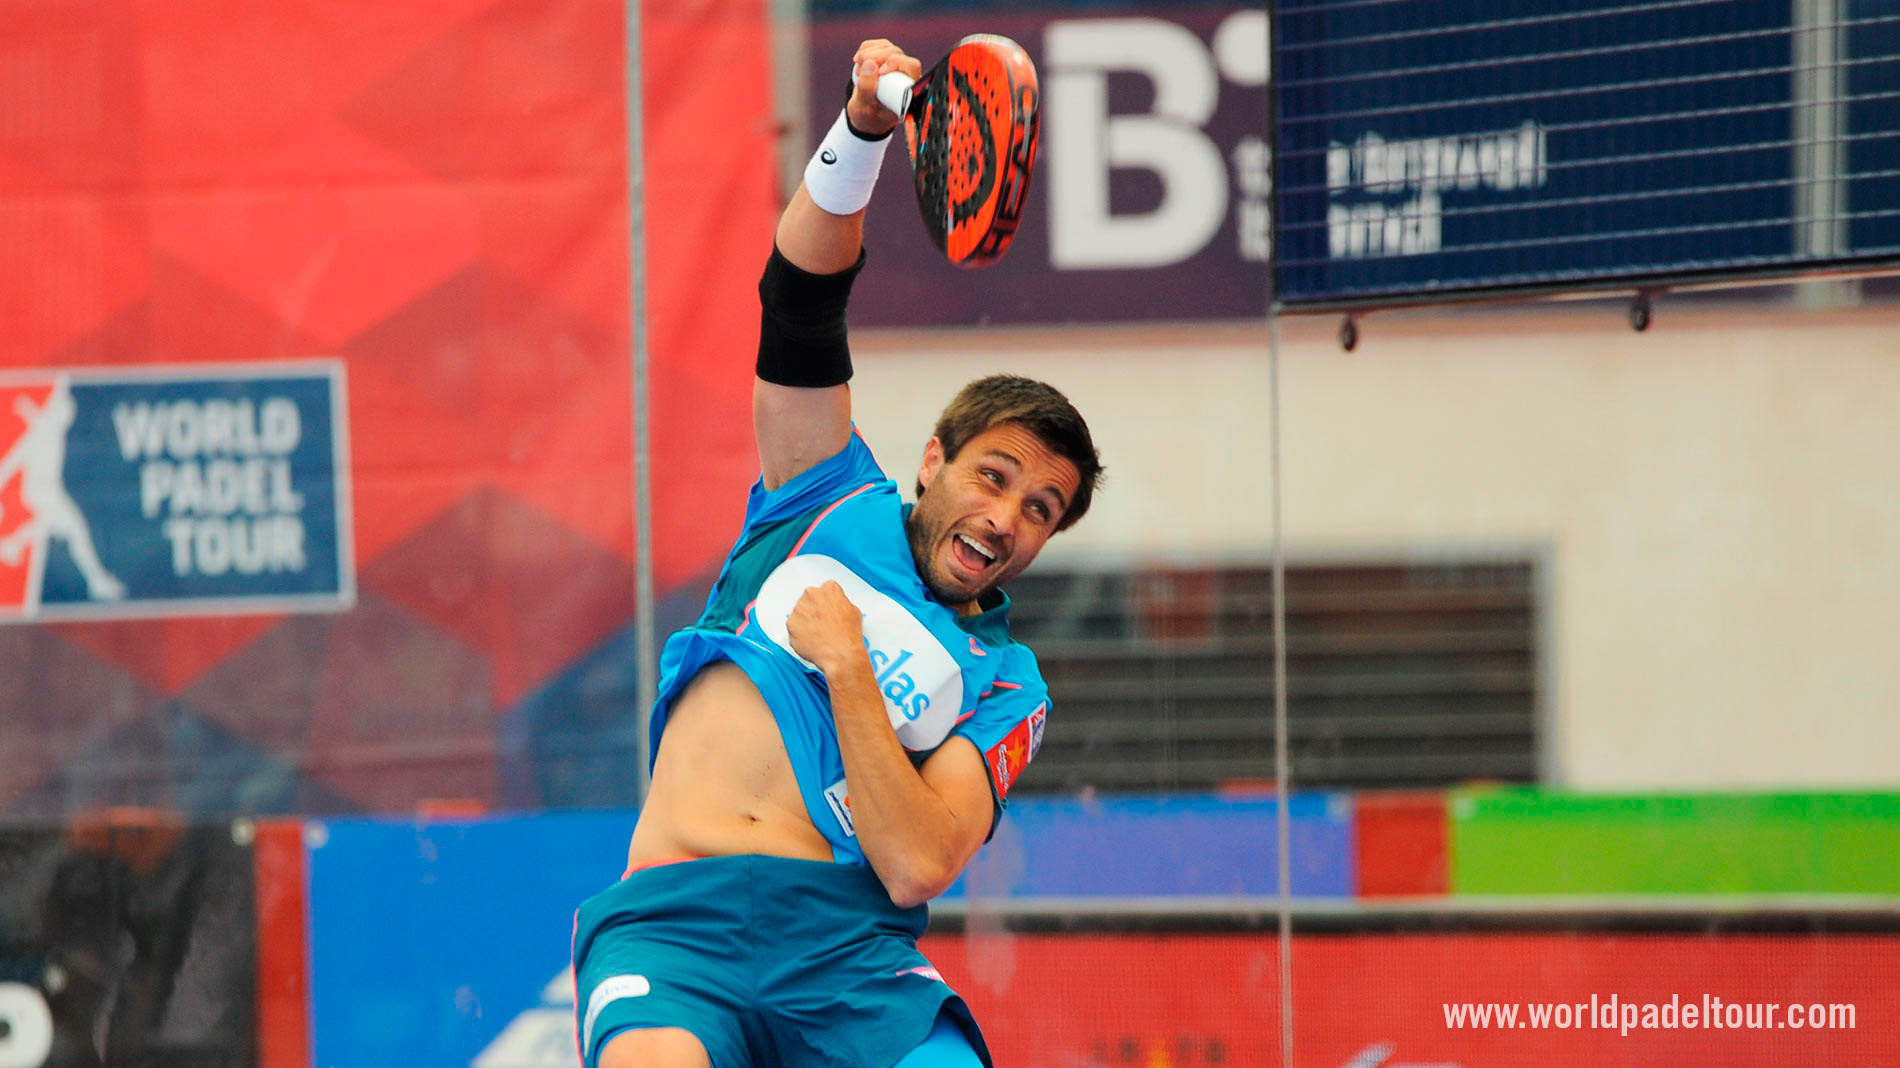 Agonizing Classification For Lamperti Mieres World Padel Tour